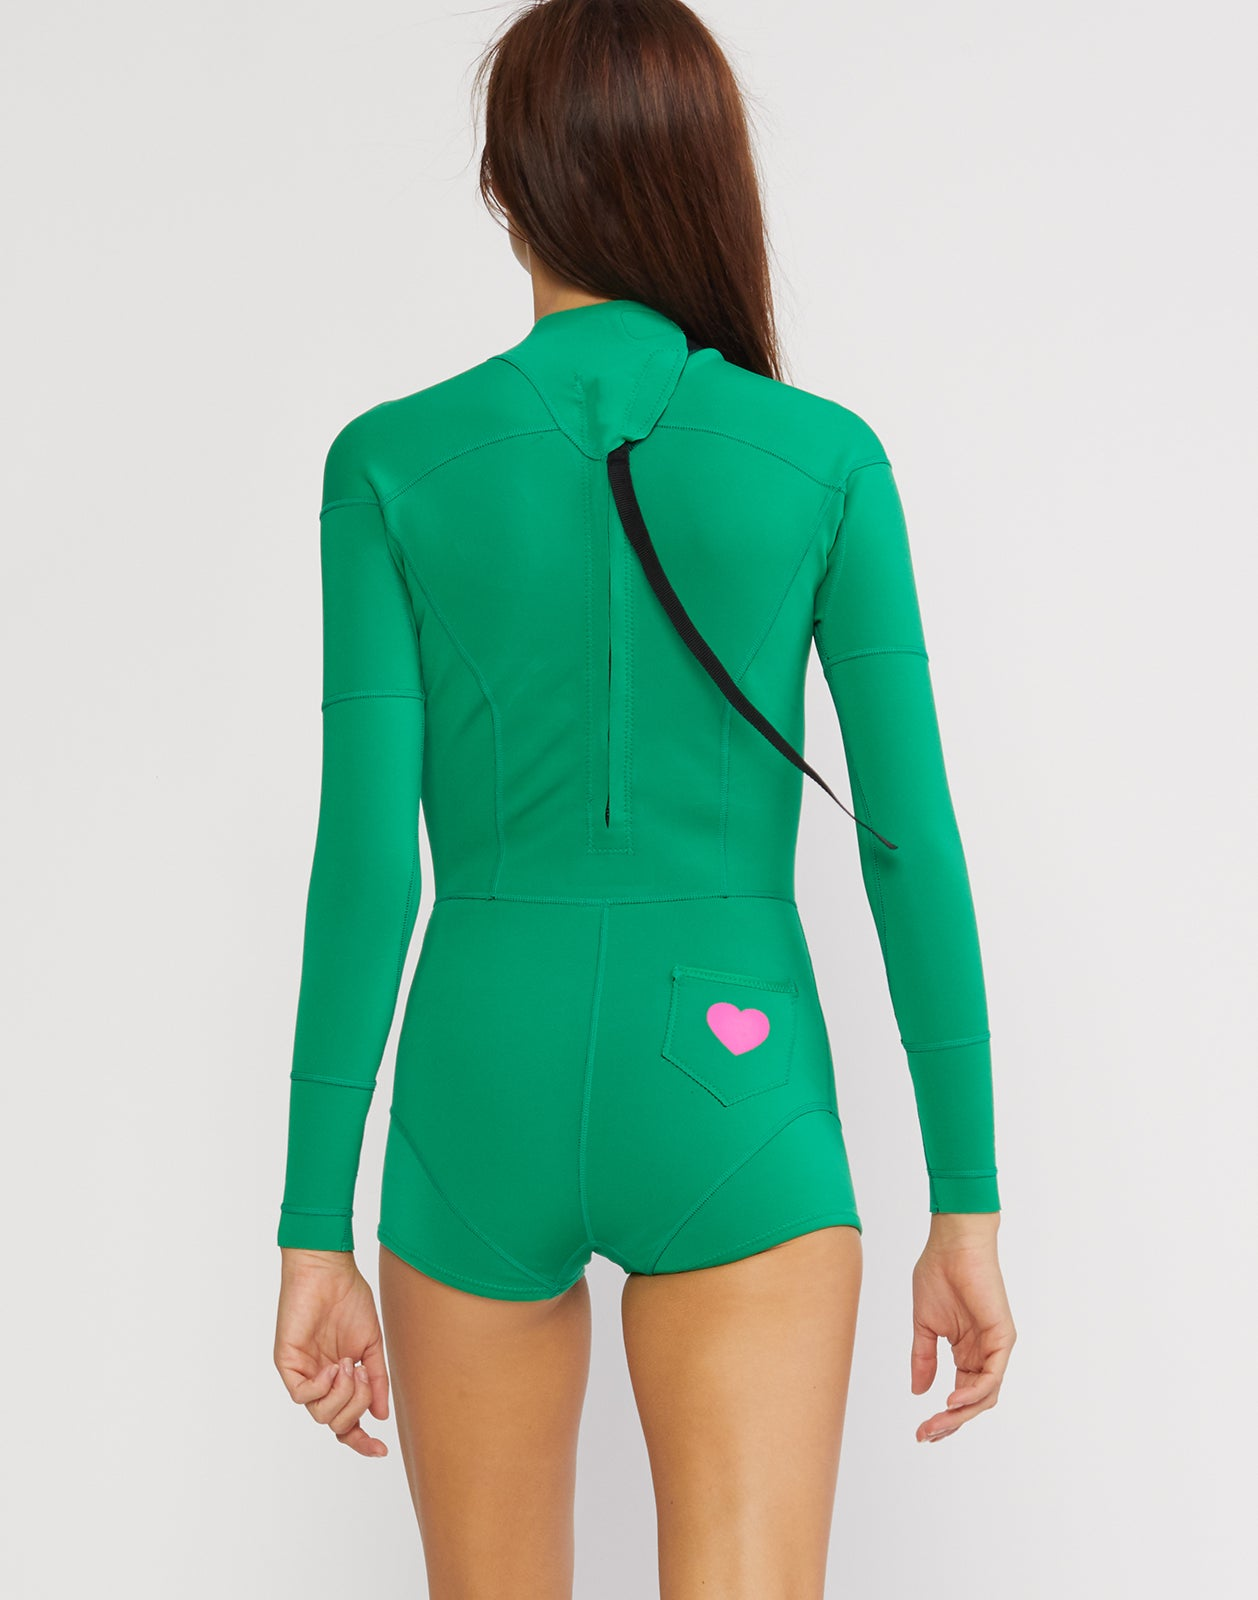 Back view of the kelly green neoprene wetsuit with mini back pocket and heart detail.